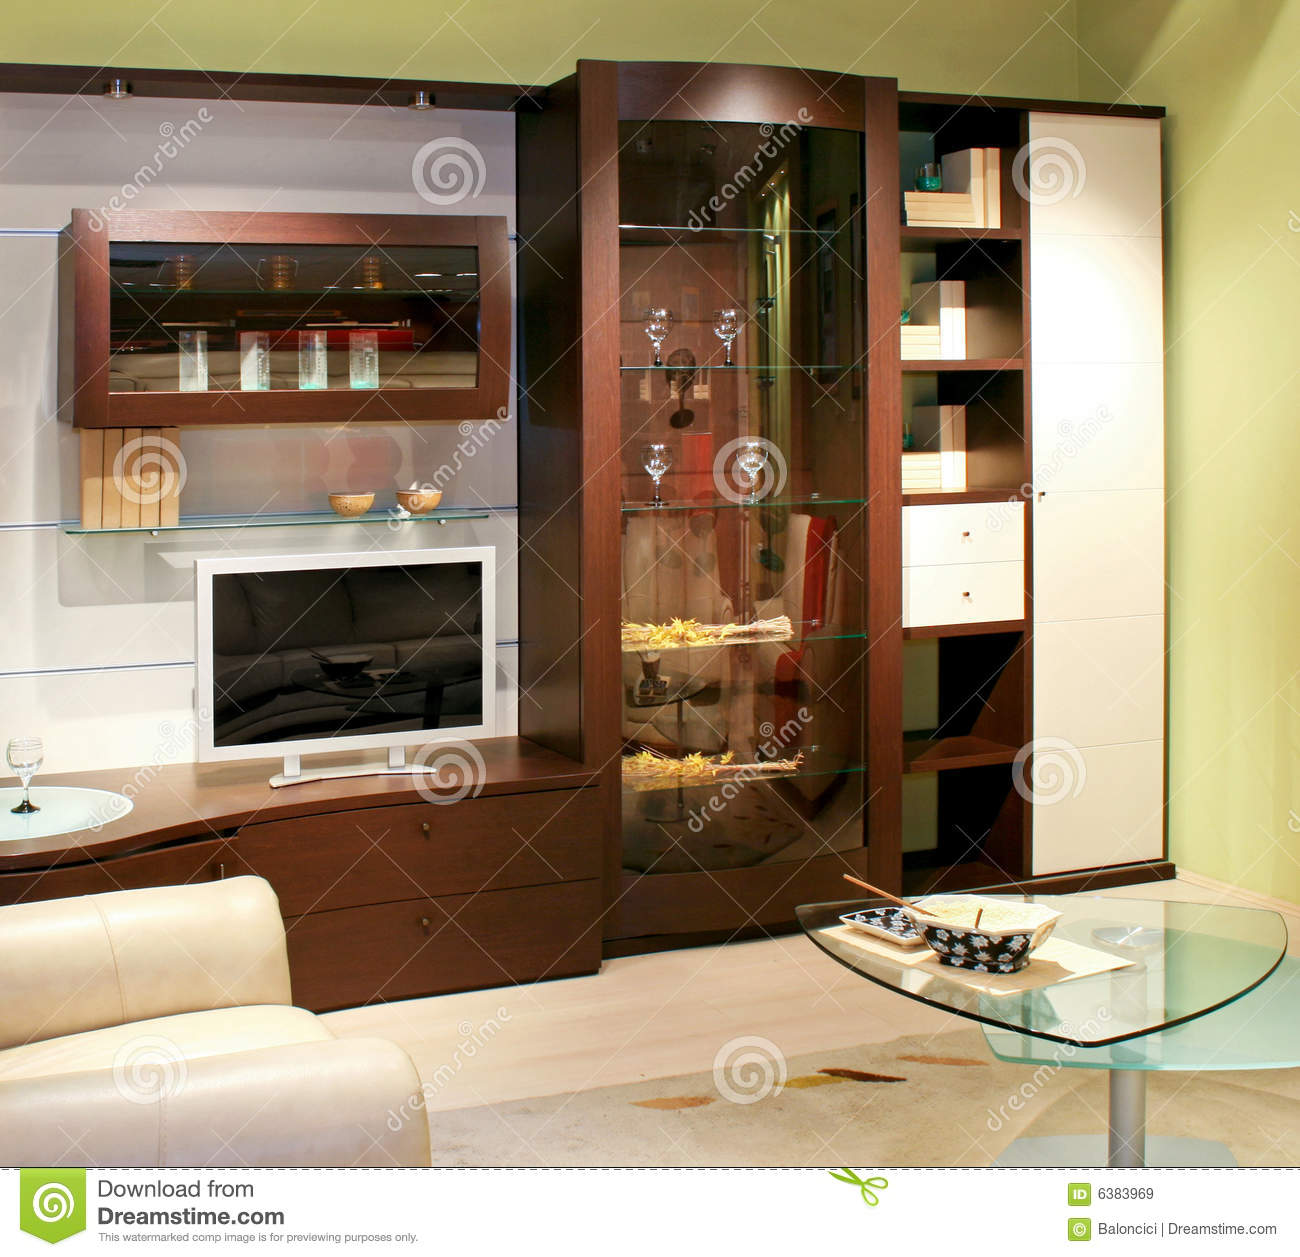 living room closet royalty free stock images image 6383969